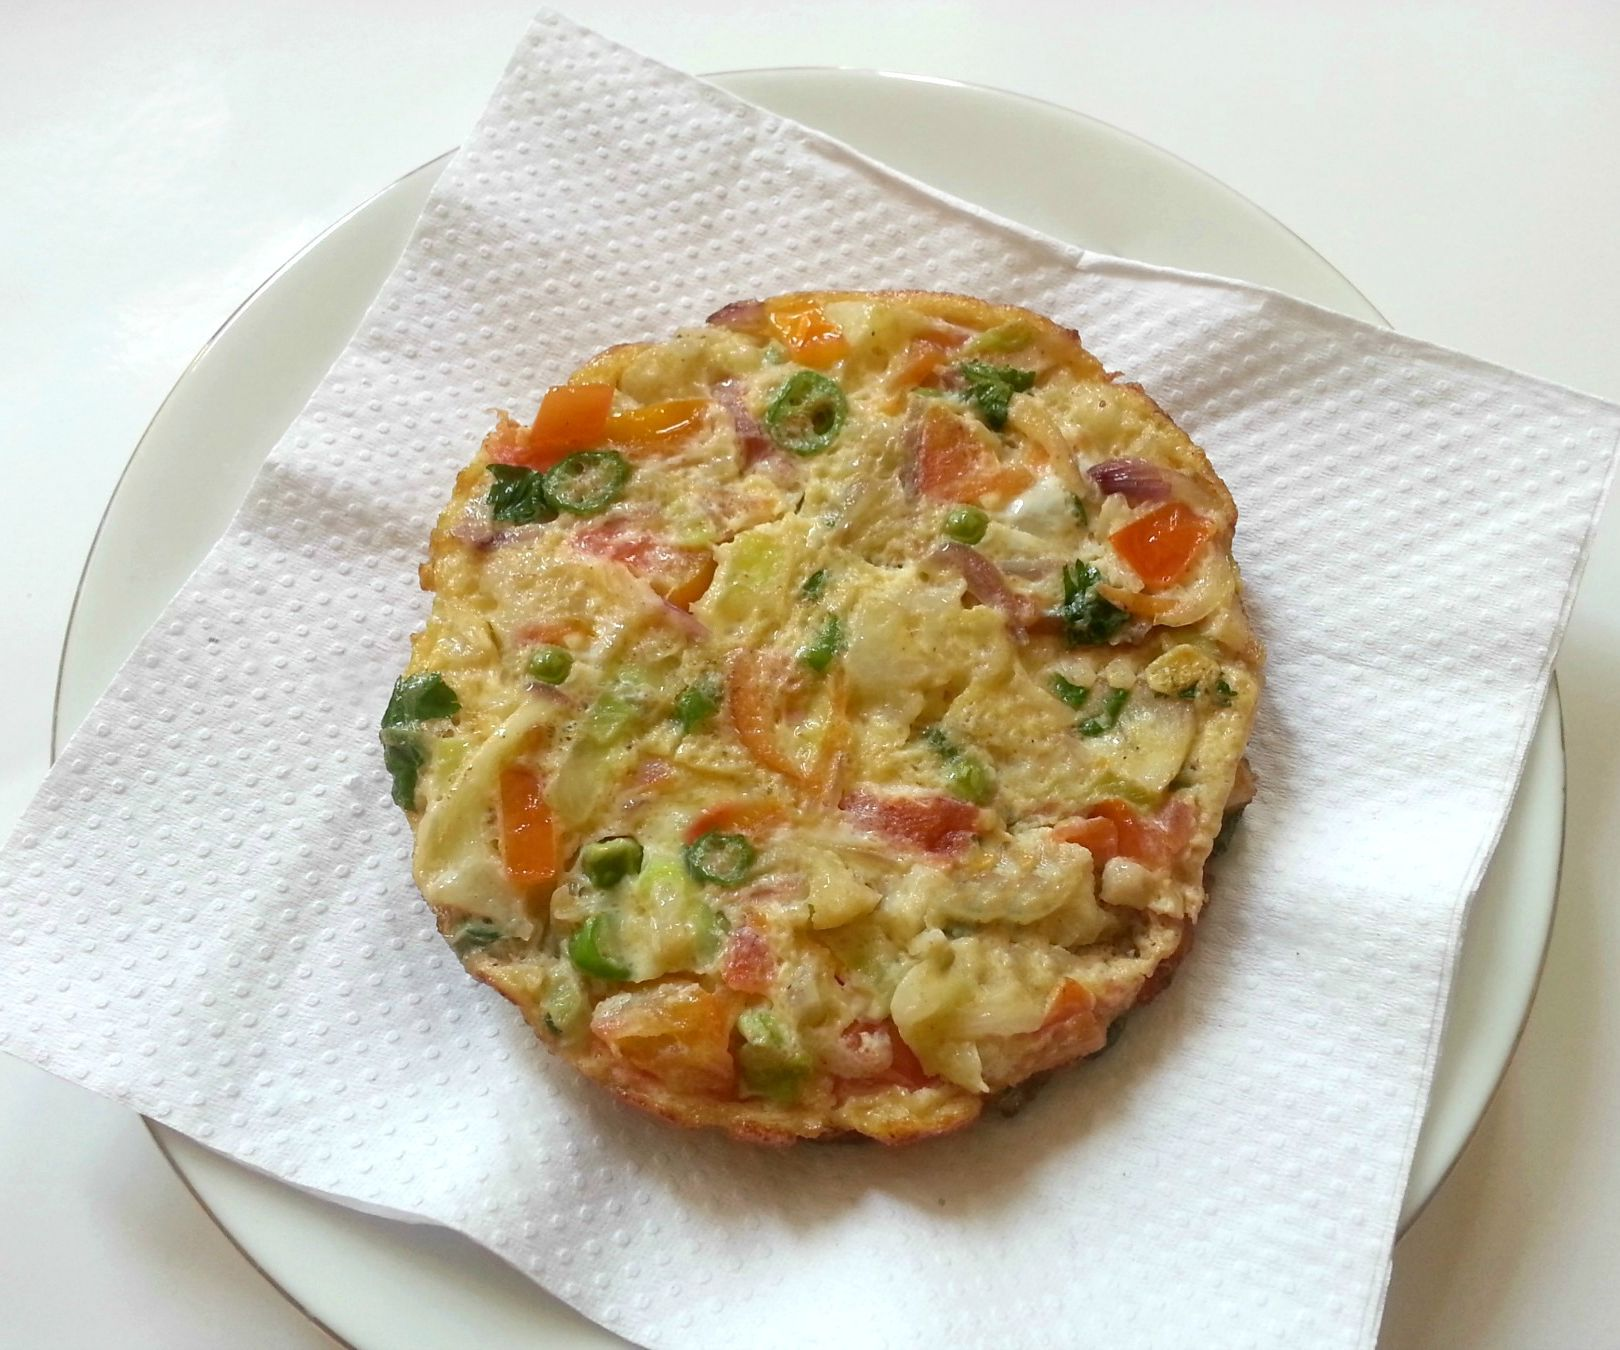 Delicious Vegetable Omelette